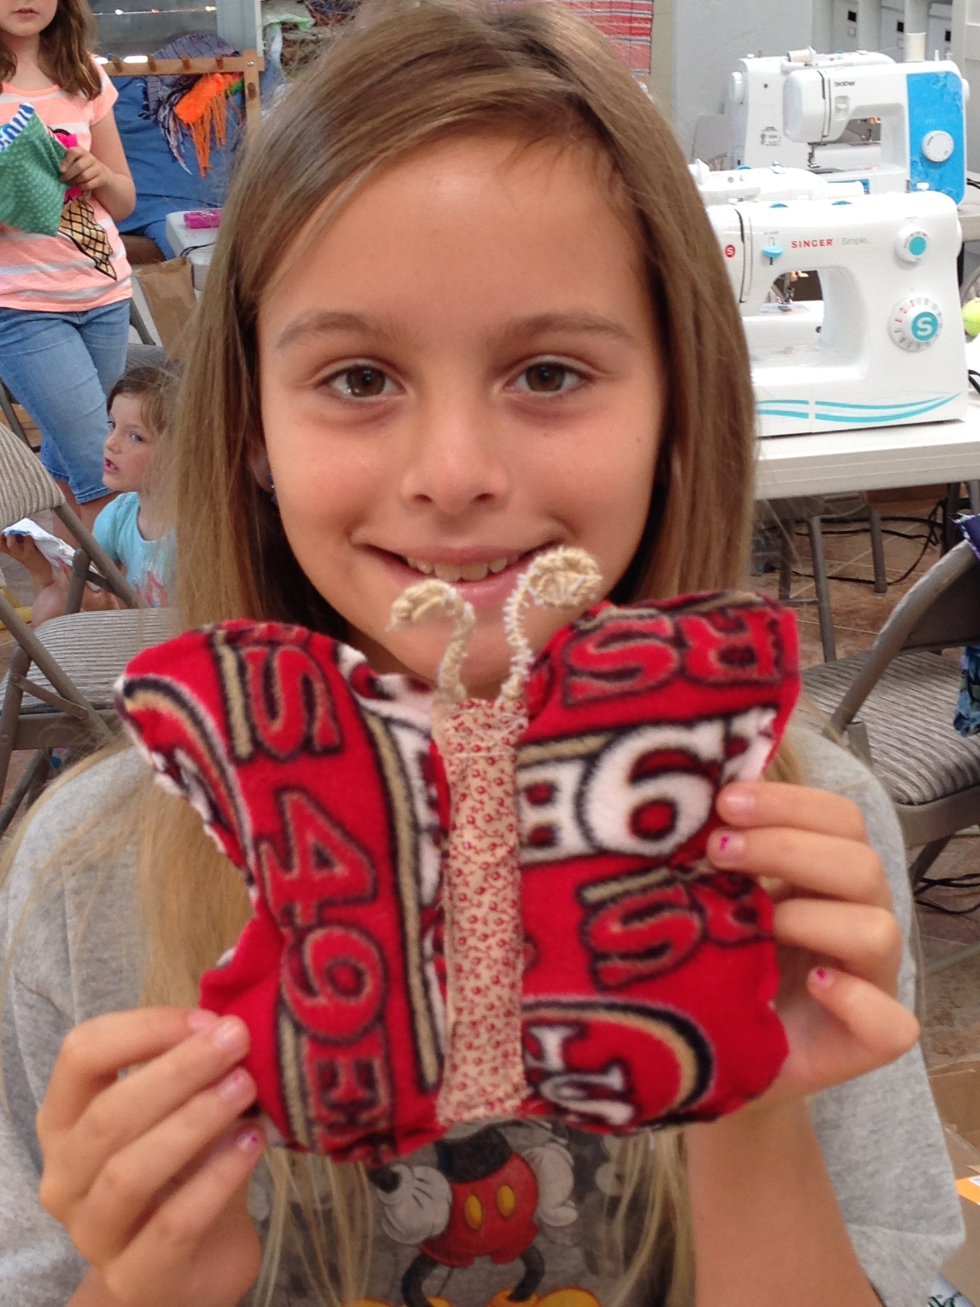 4th grader self-designed butterfly pillow